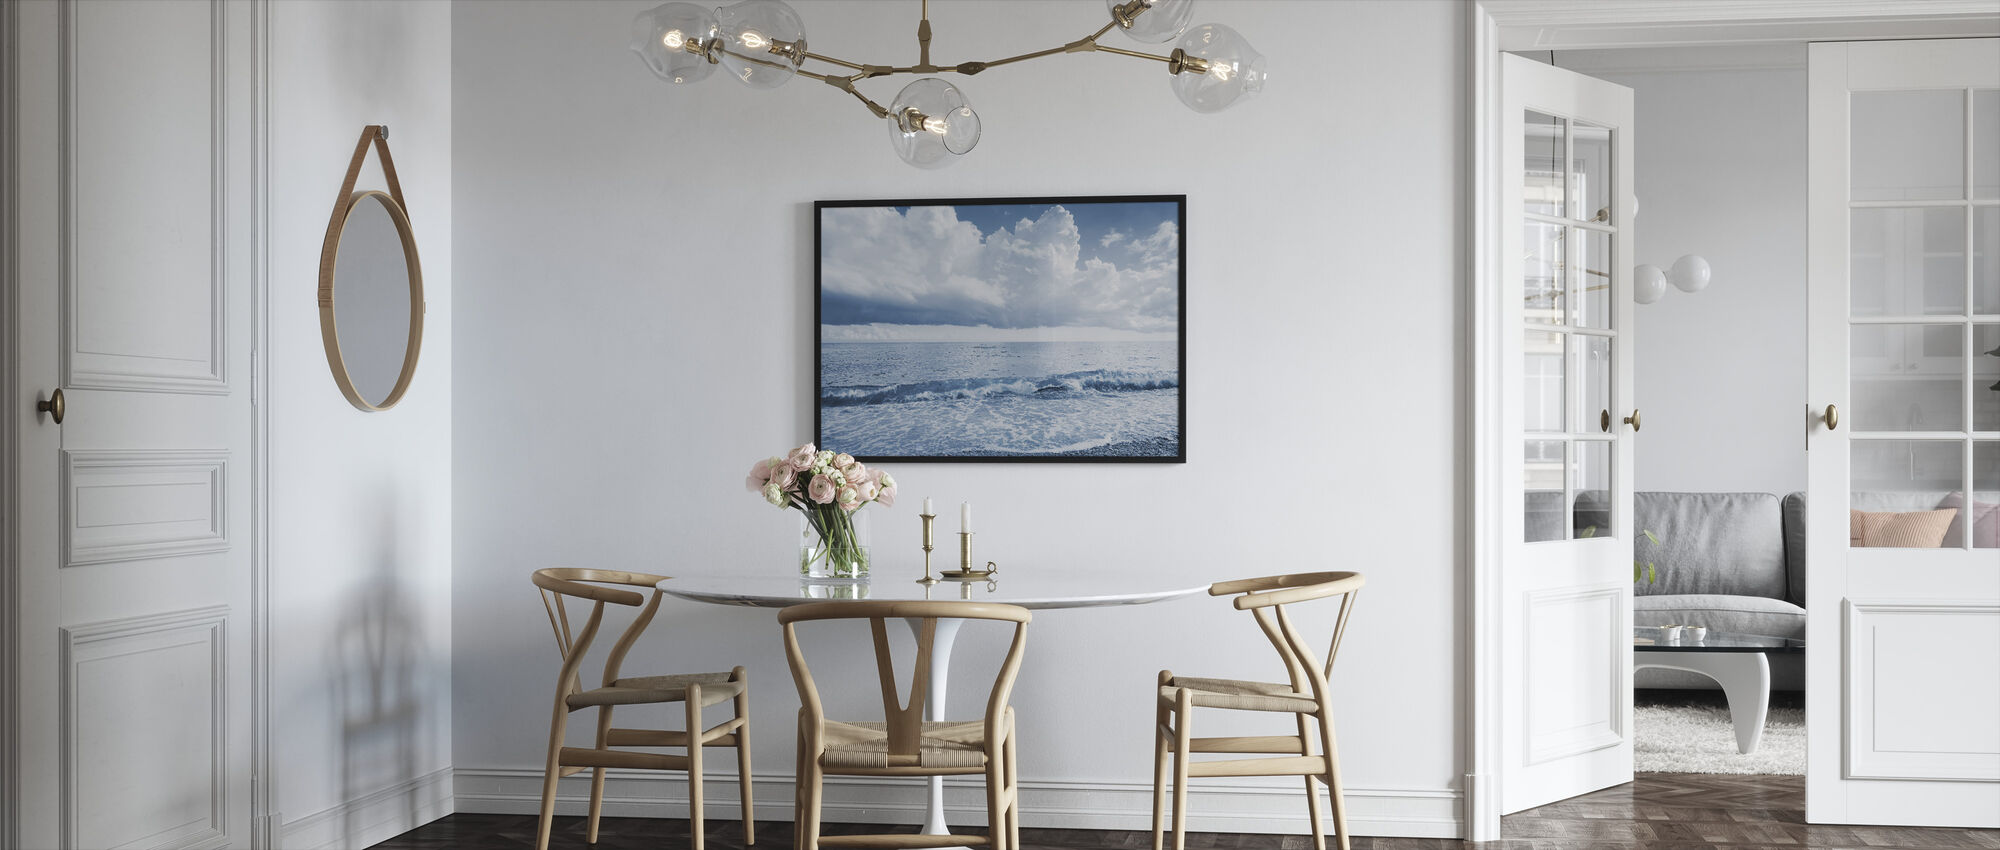 Sea and Dramatic Clouds - Framed print - Kitchen